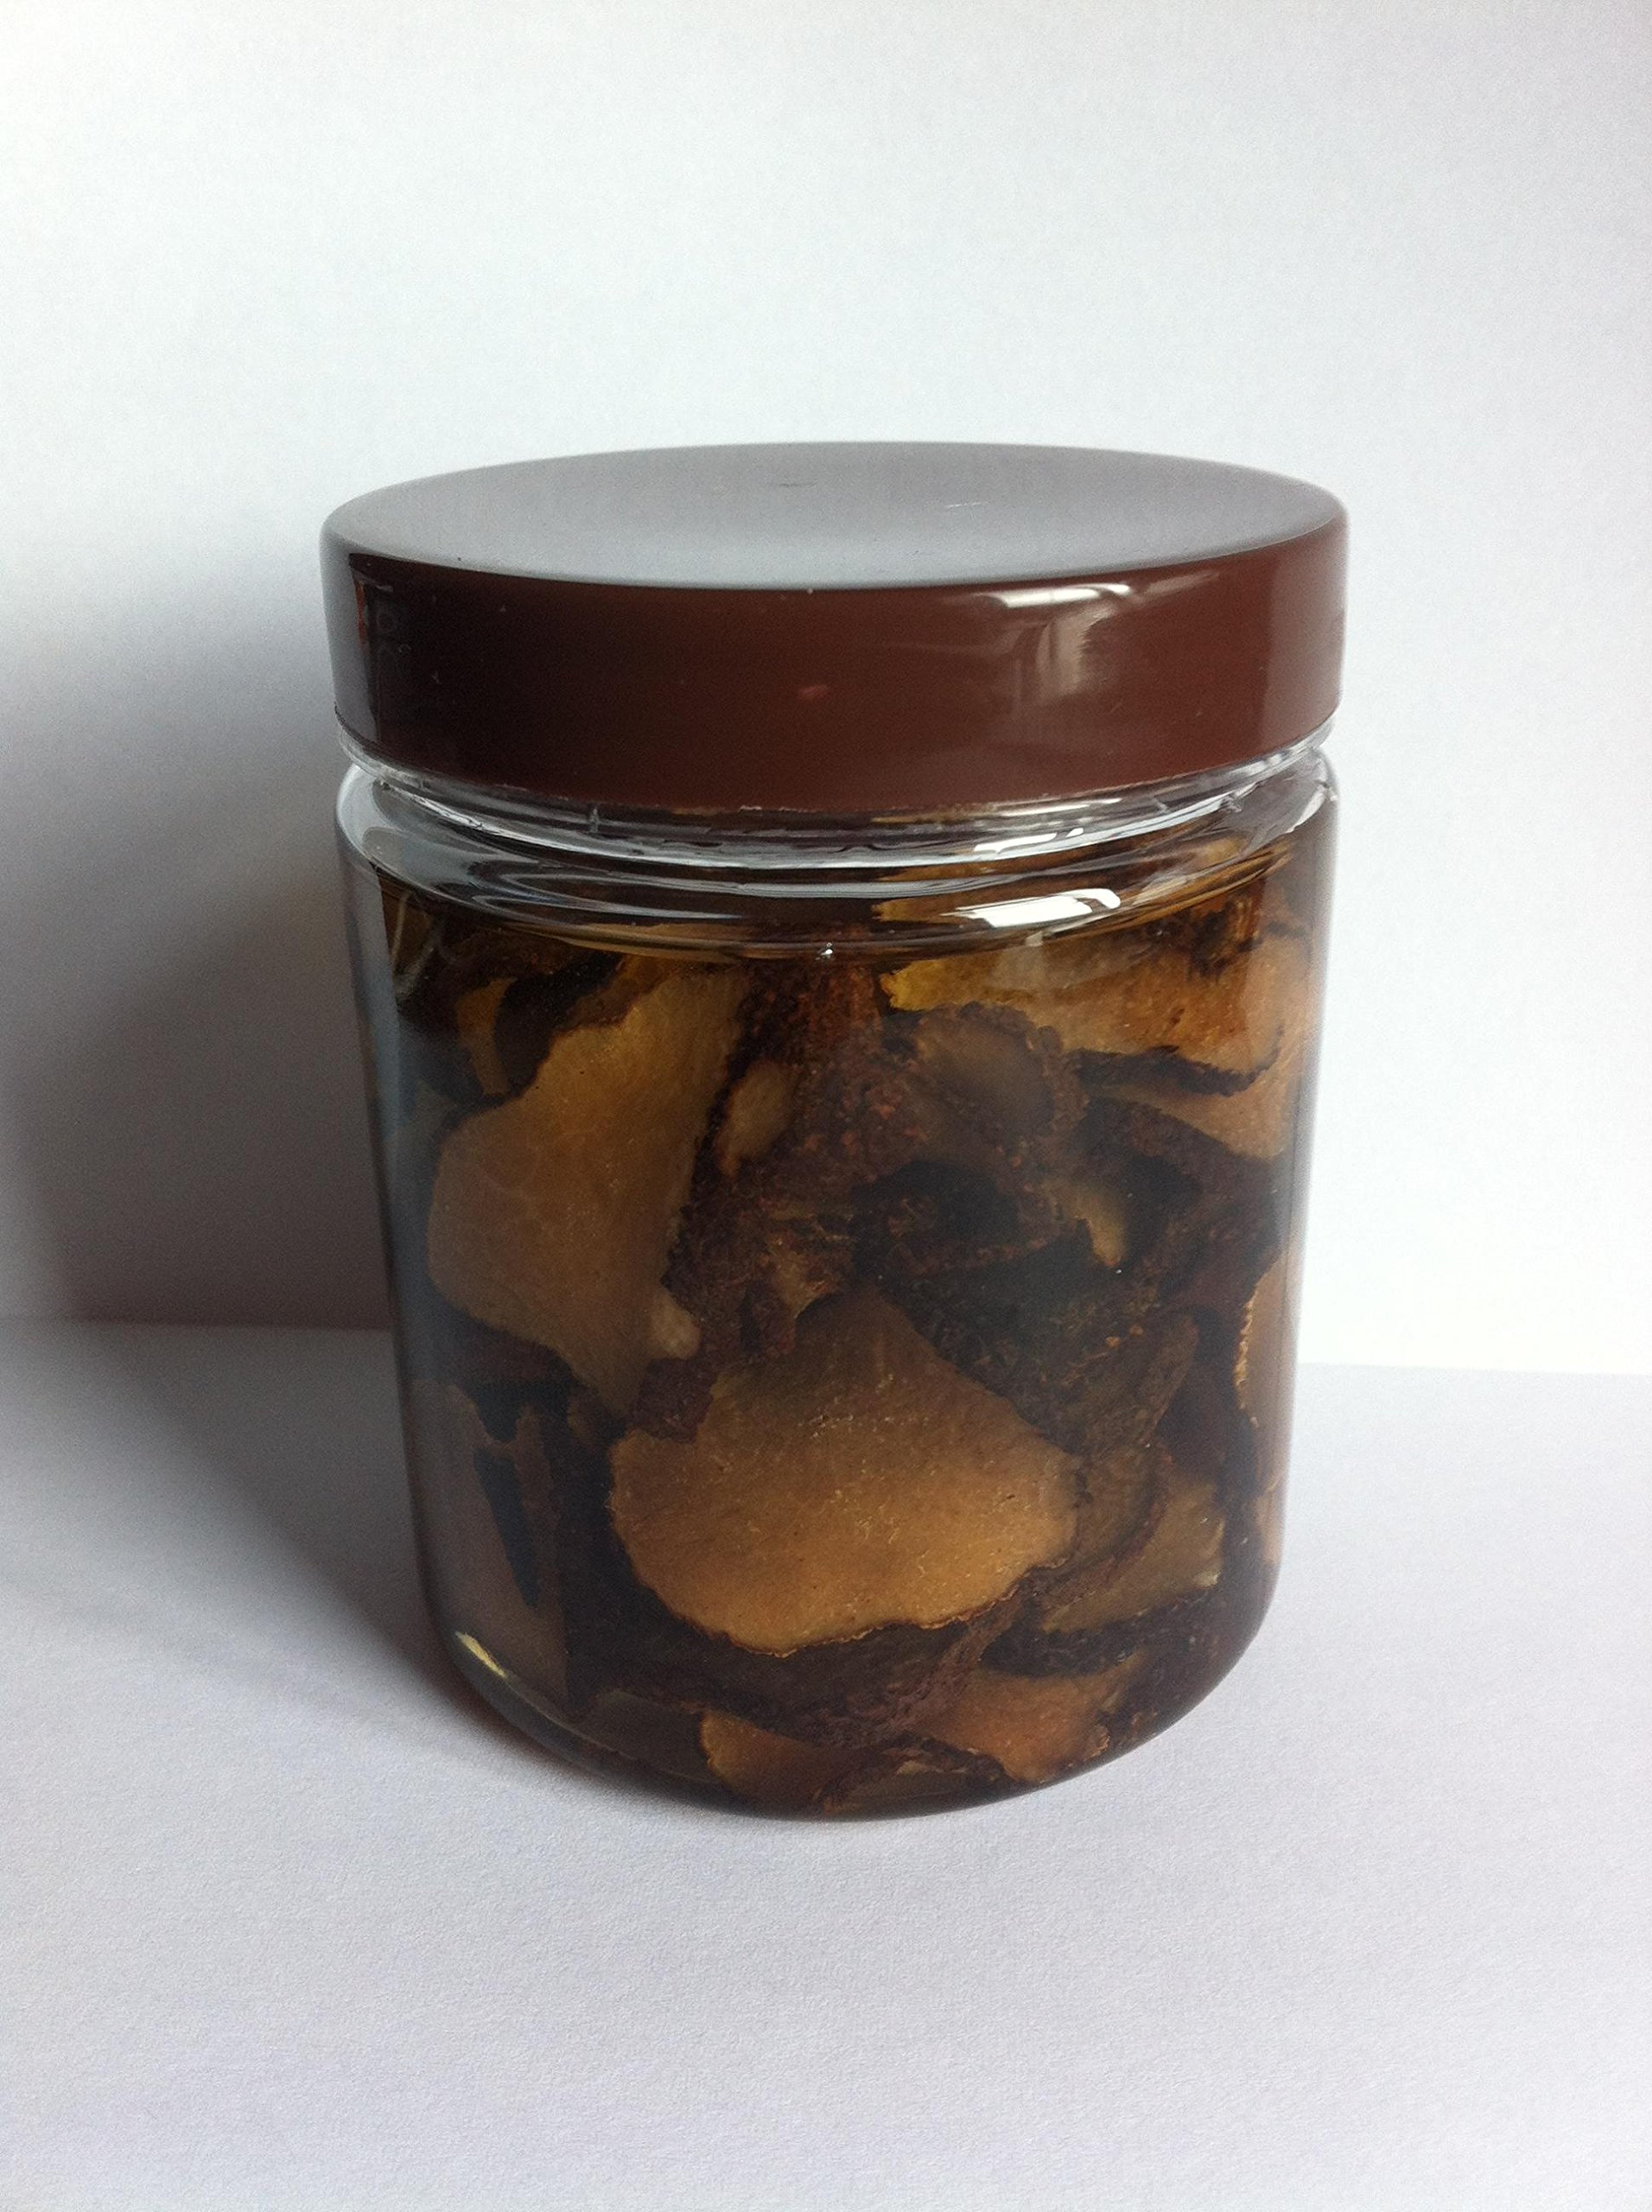 Fresh truffle slices in pure olive oil, Himalayas truffles Grade A 135 grams